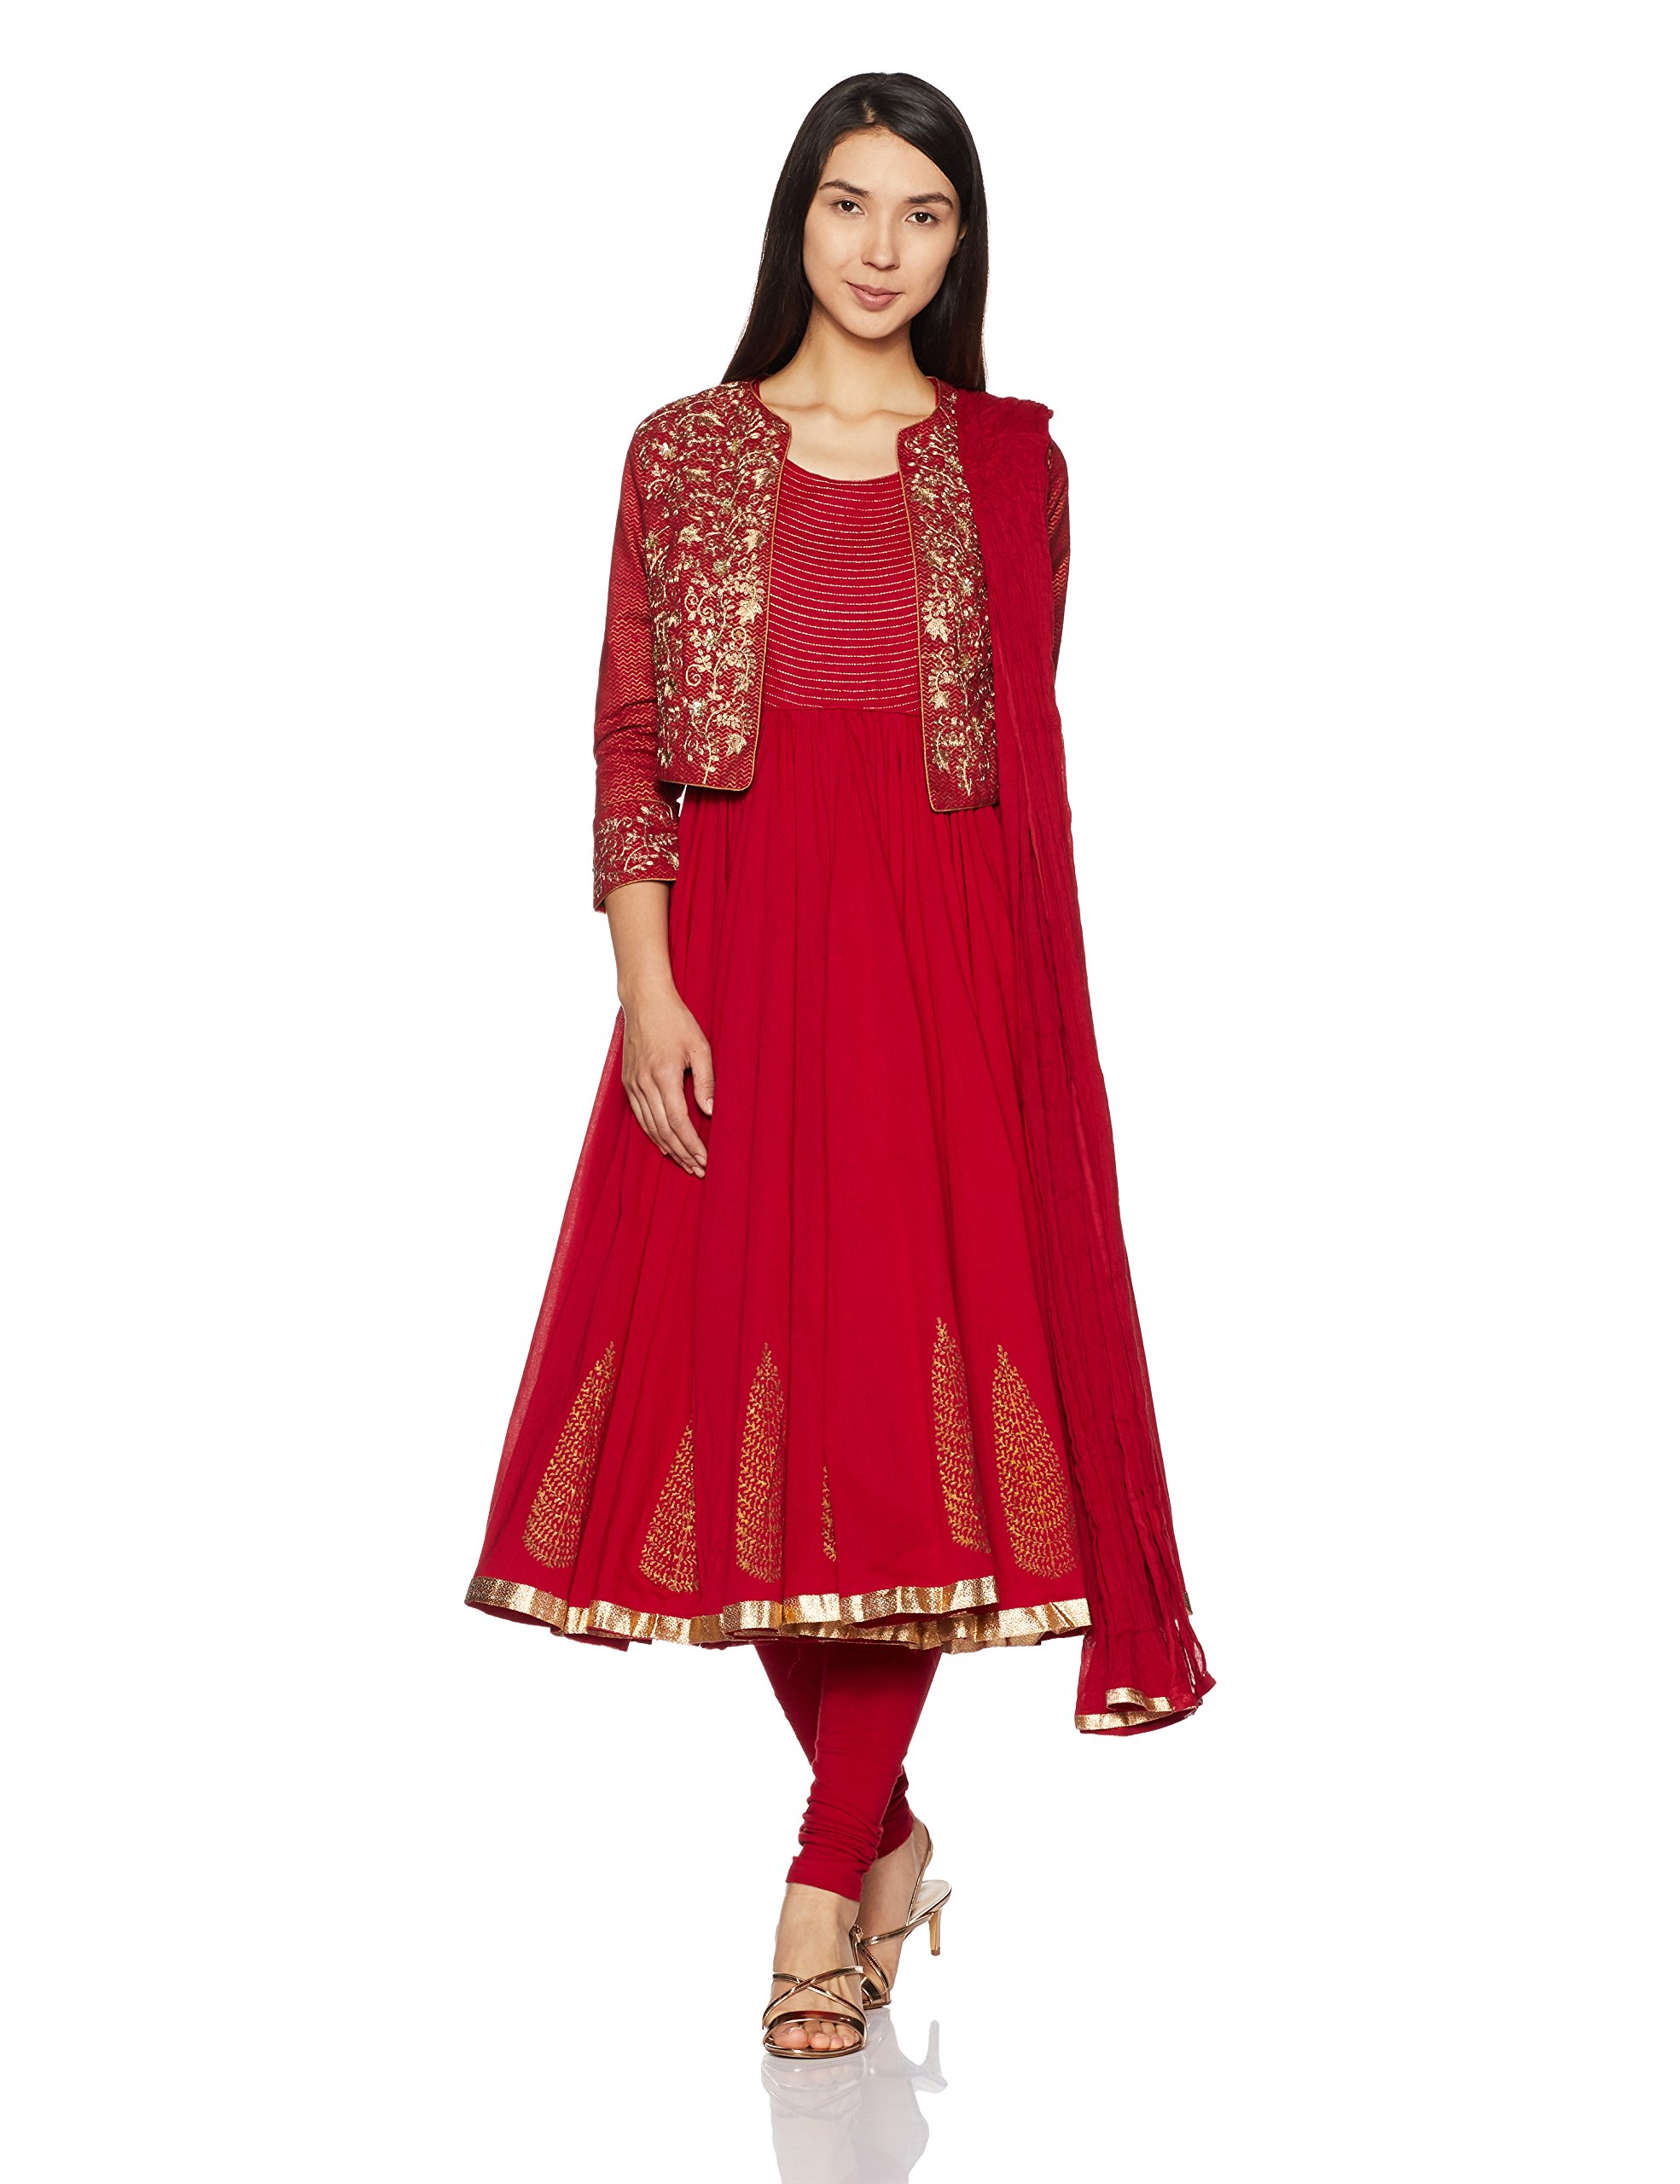 BIBA Women's Anarkali Cotton Suit Set 38 Red